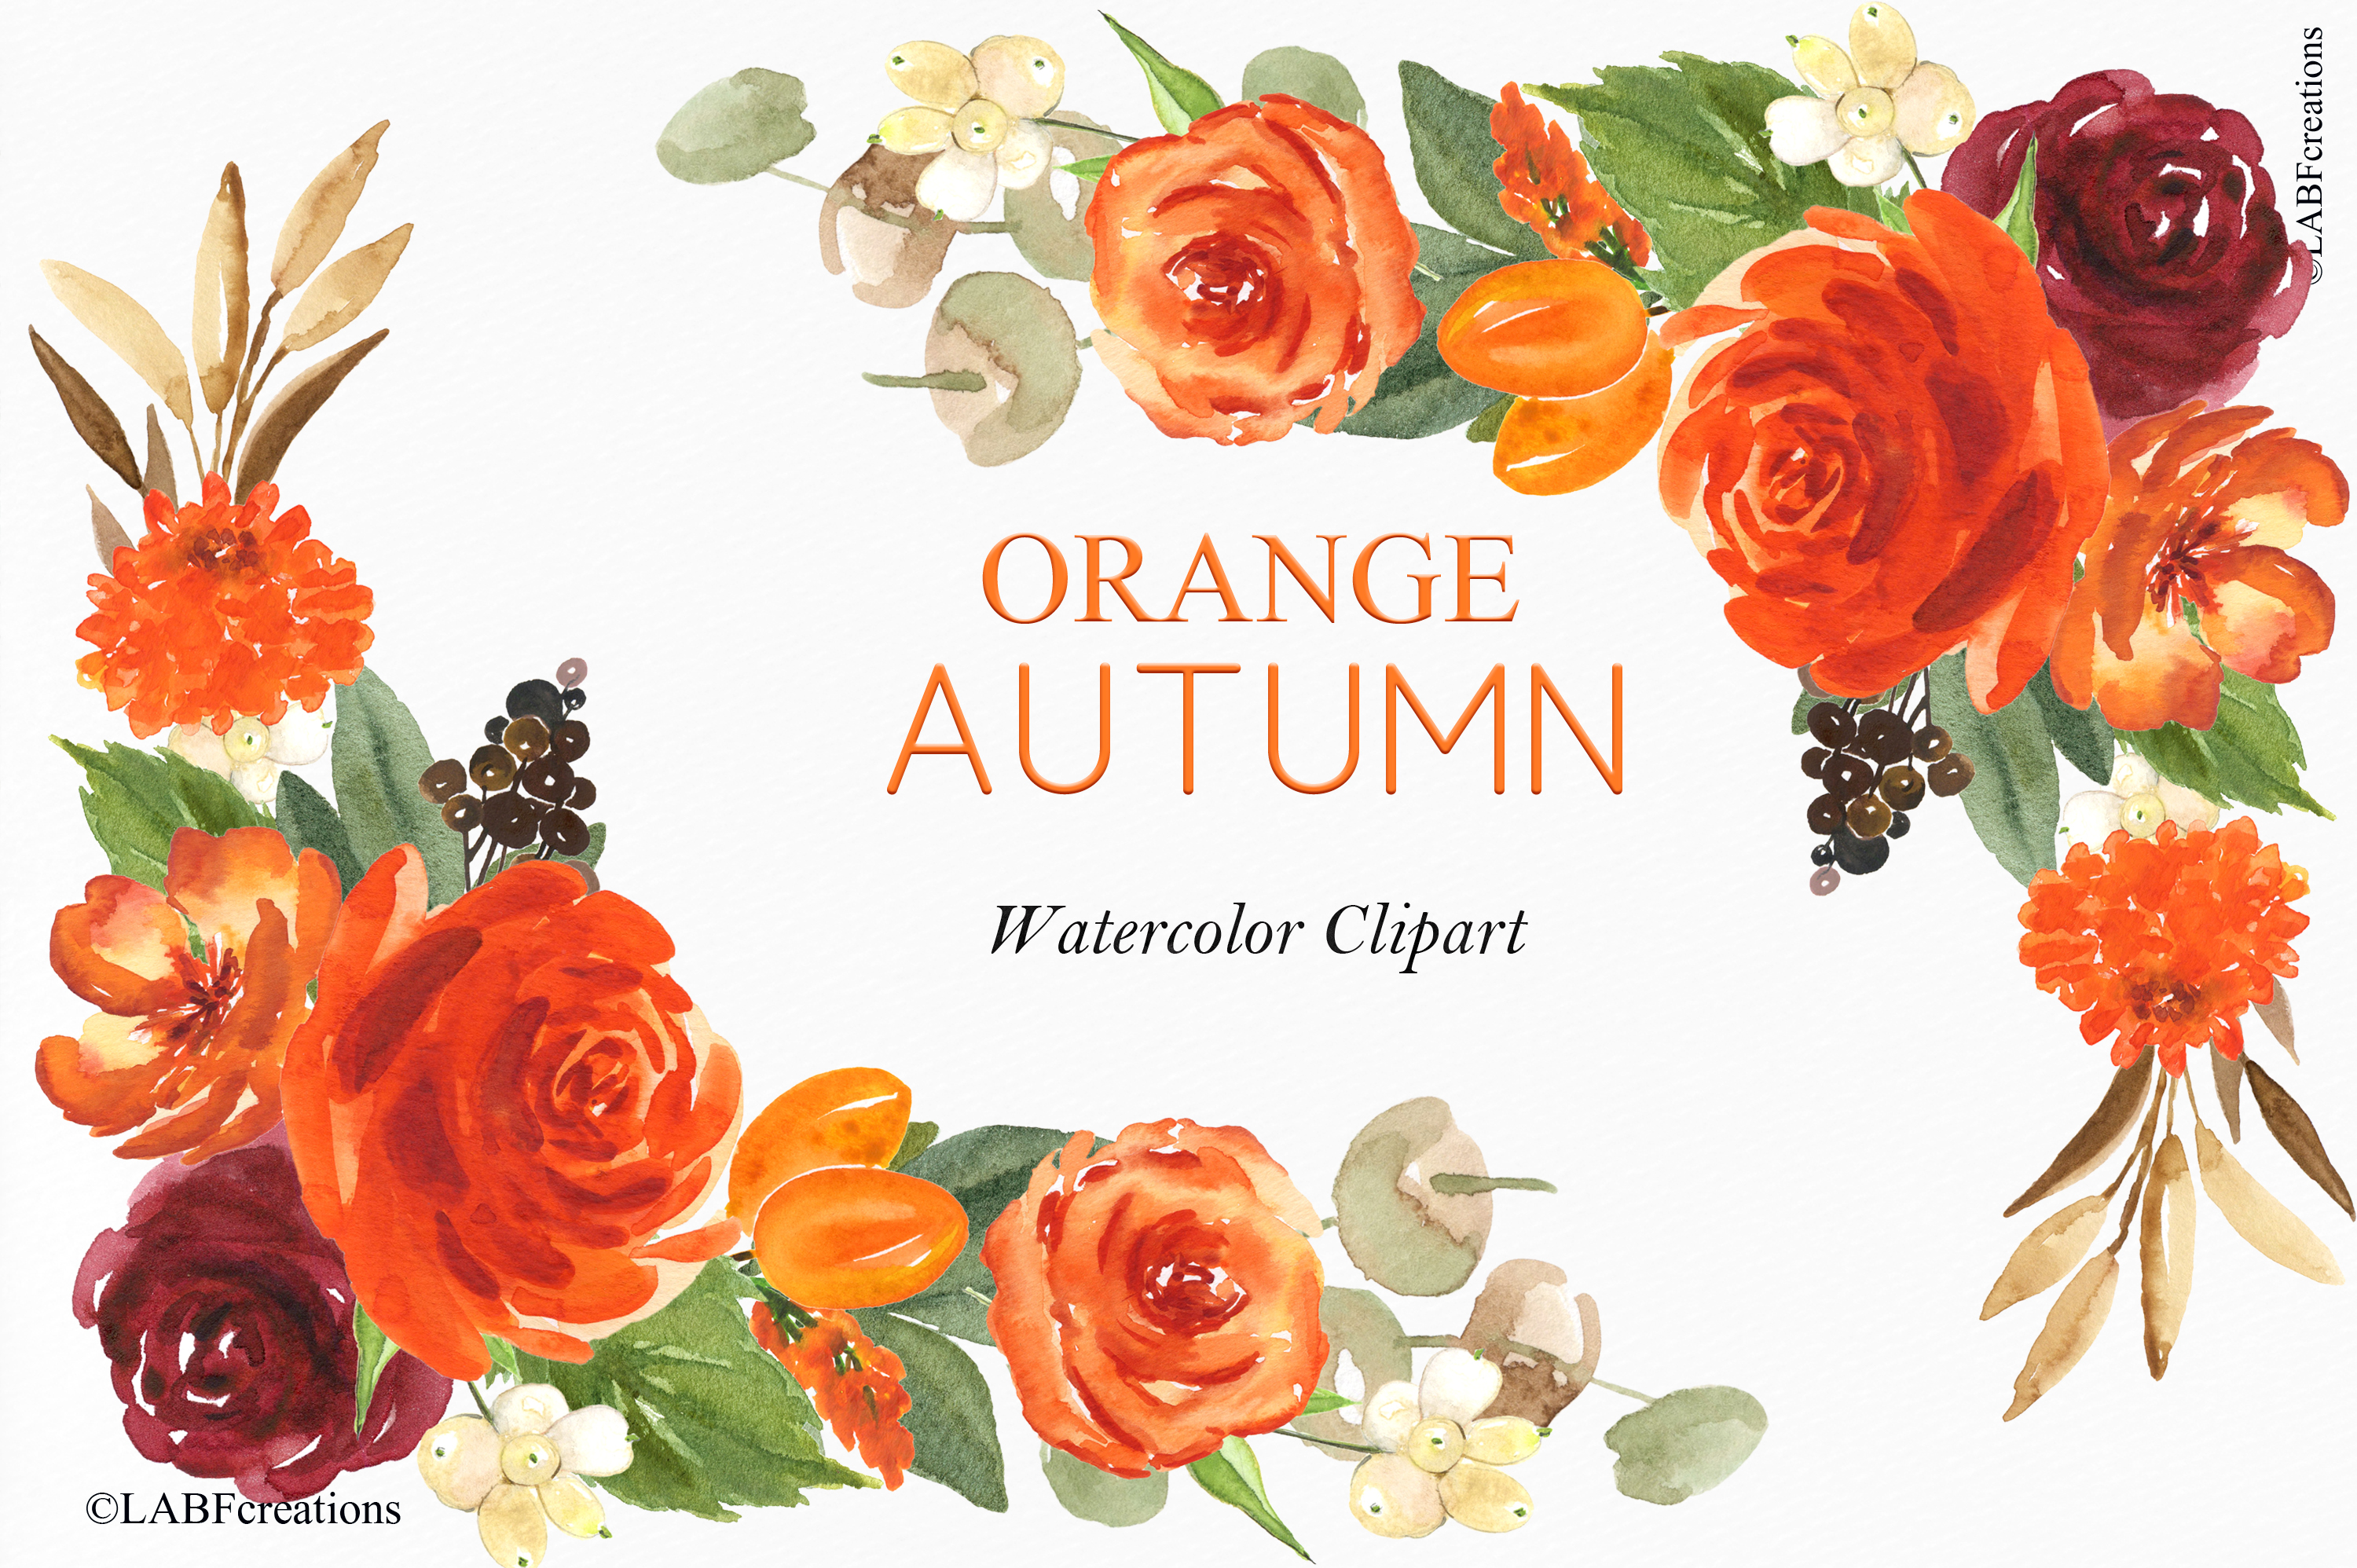 Orange, red and burgundy autumn flowers collection. example image 7